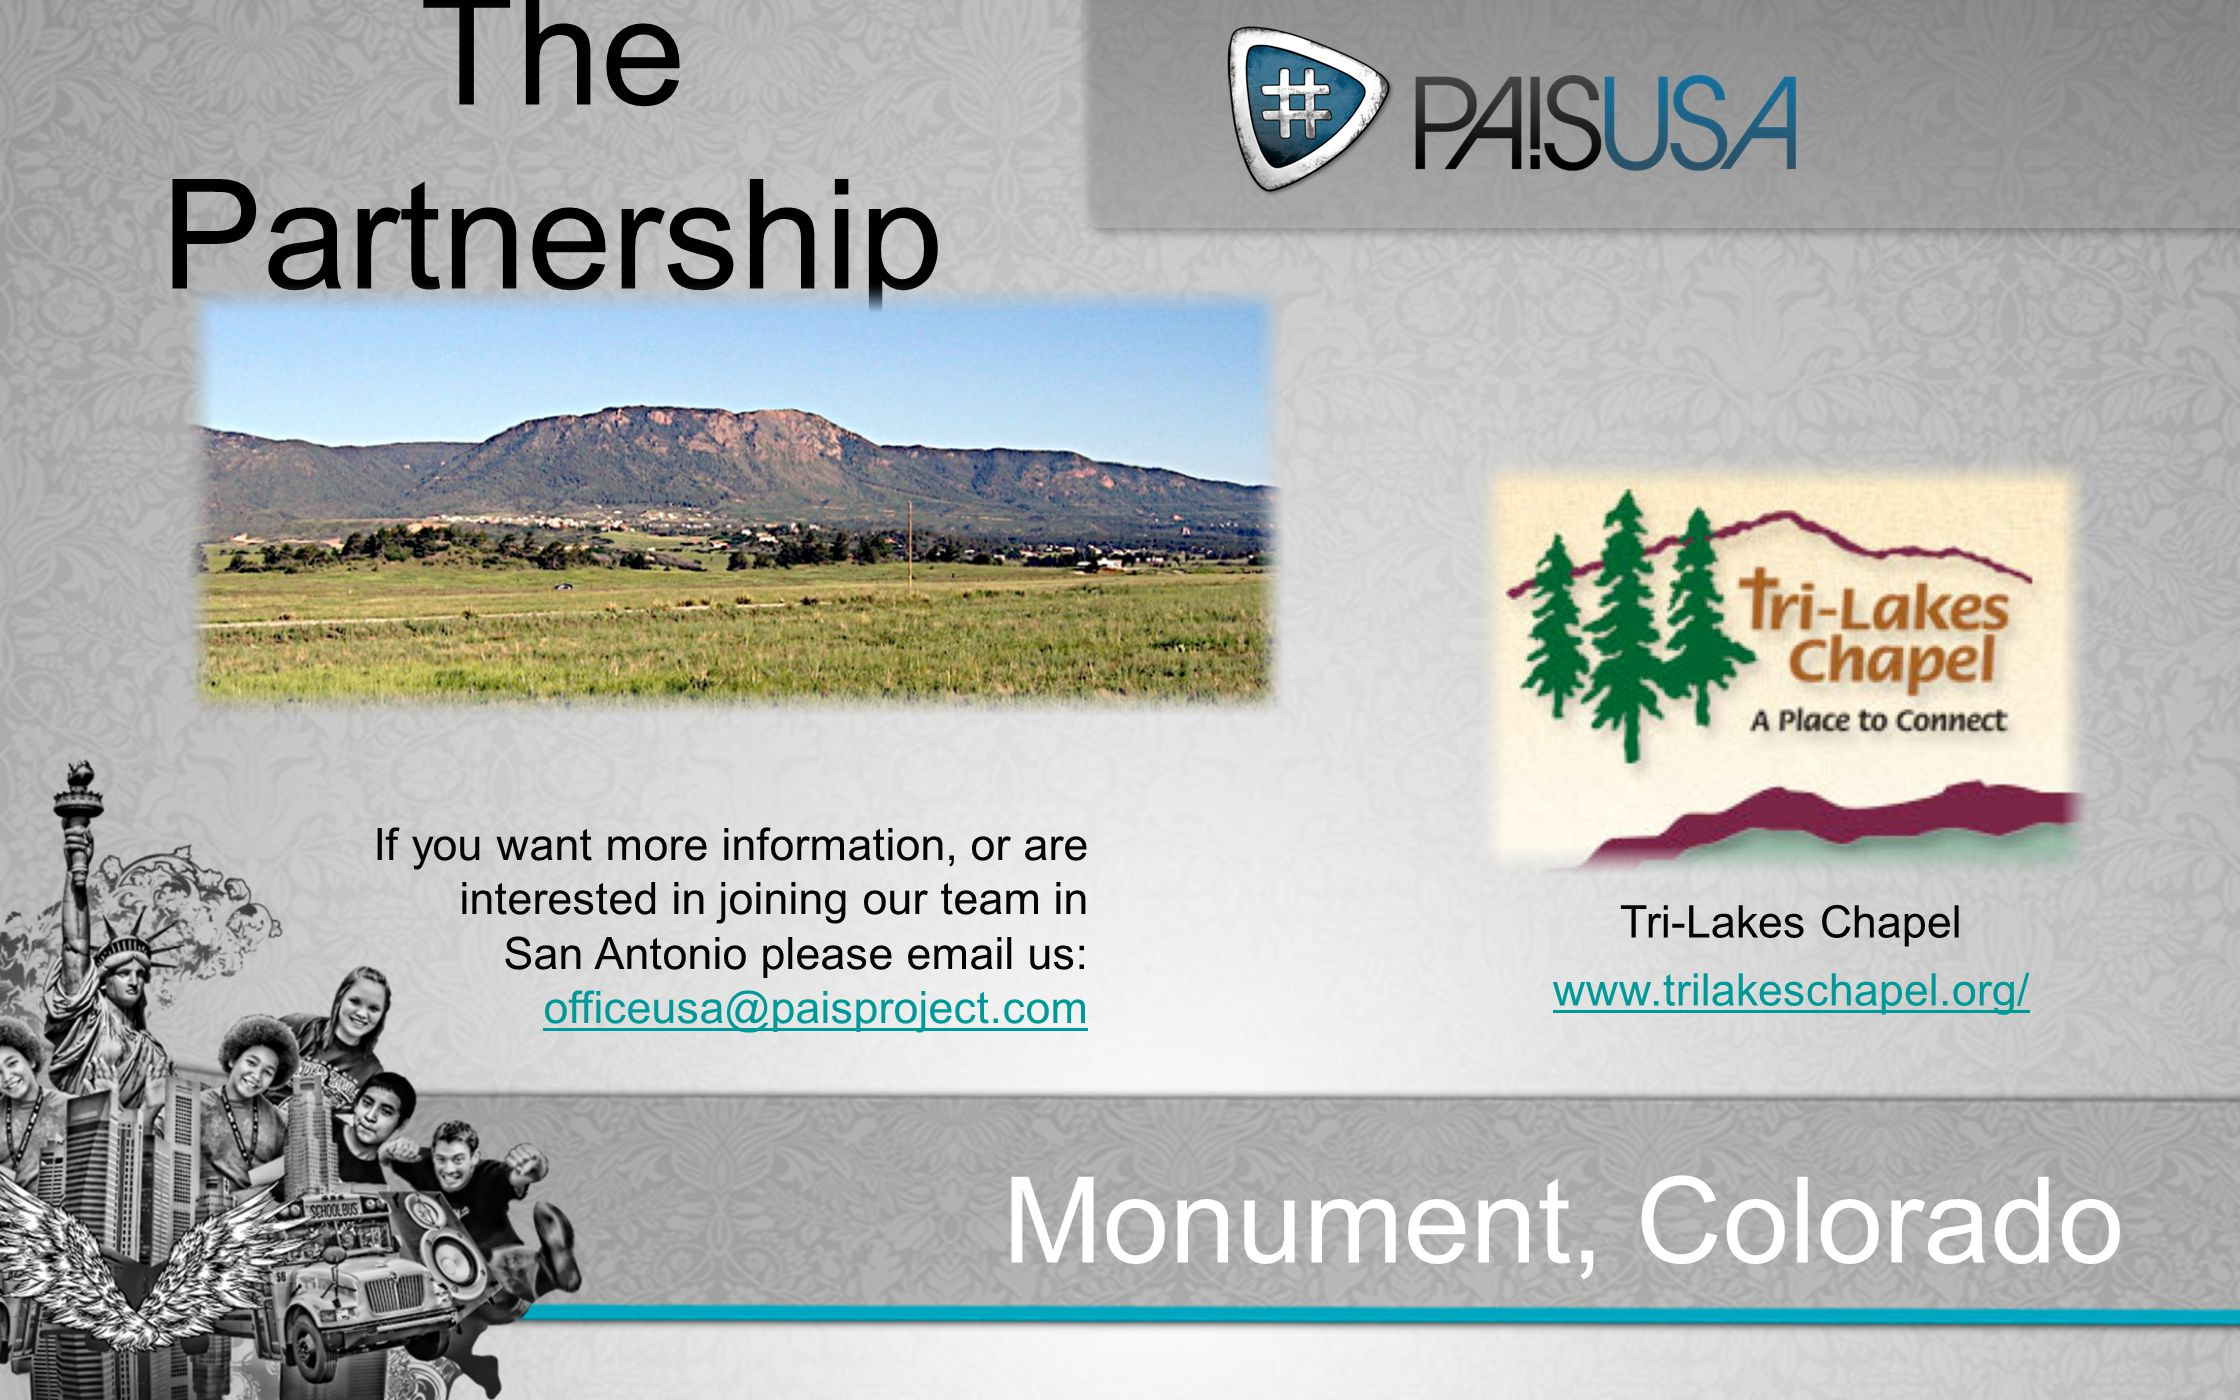 Colorado Metro:Track The Partnership Monument, Colorado Tri-Lakes Chapel www.trilakeschapel.org/ If you want more information, or are interested in joining our team in San Antonio please email us: officeusa@paisproject.com officeusa@paisproject.com